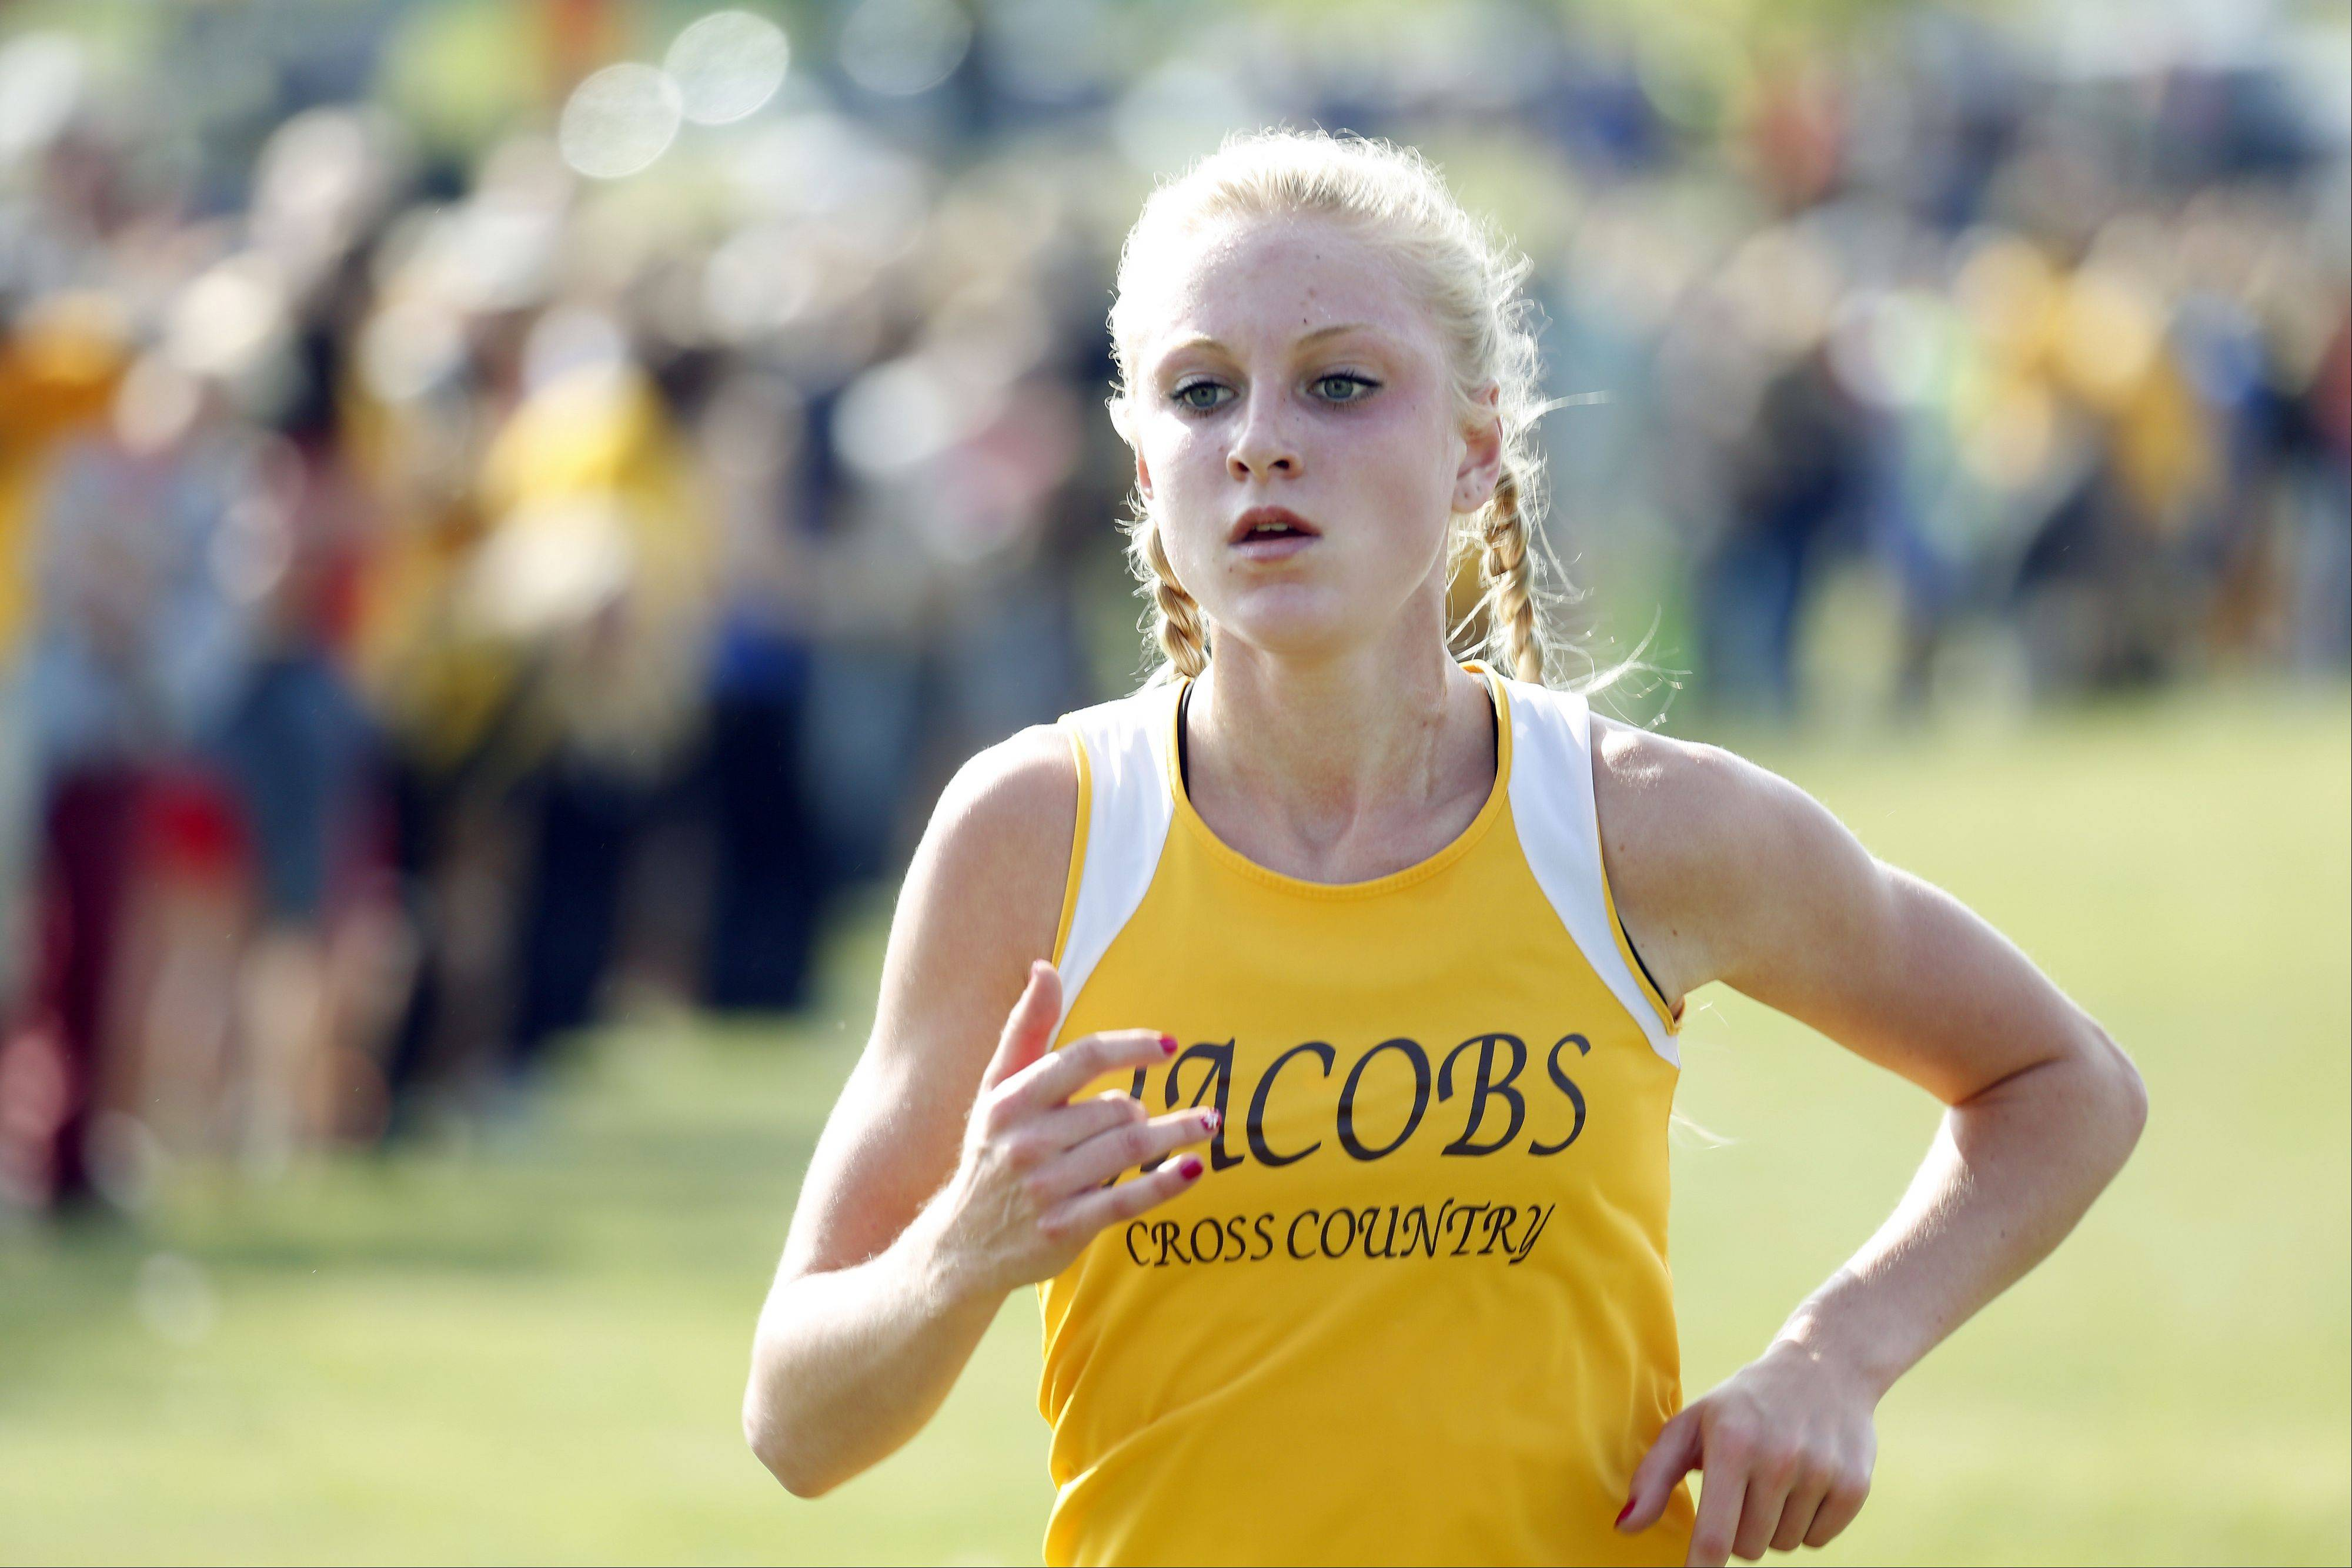 Jacobs' Lauren Van Vlierbergen has her eye on first place as she crosses the finish line during the Flyin' Hawk Cross Country meet Saturday at Sunrise Park in Bartlett.